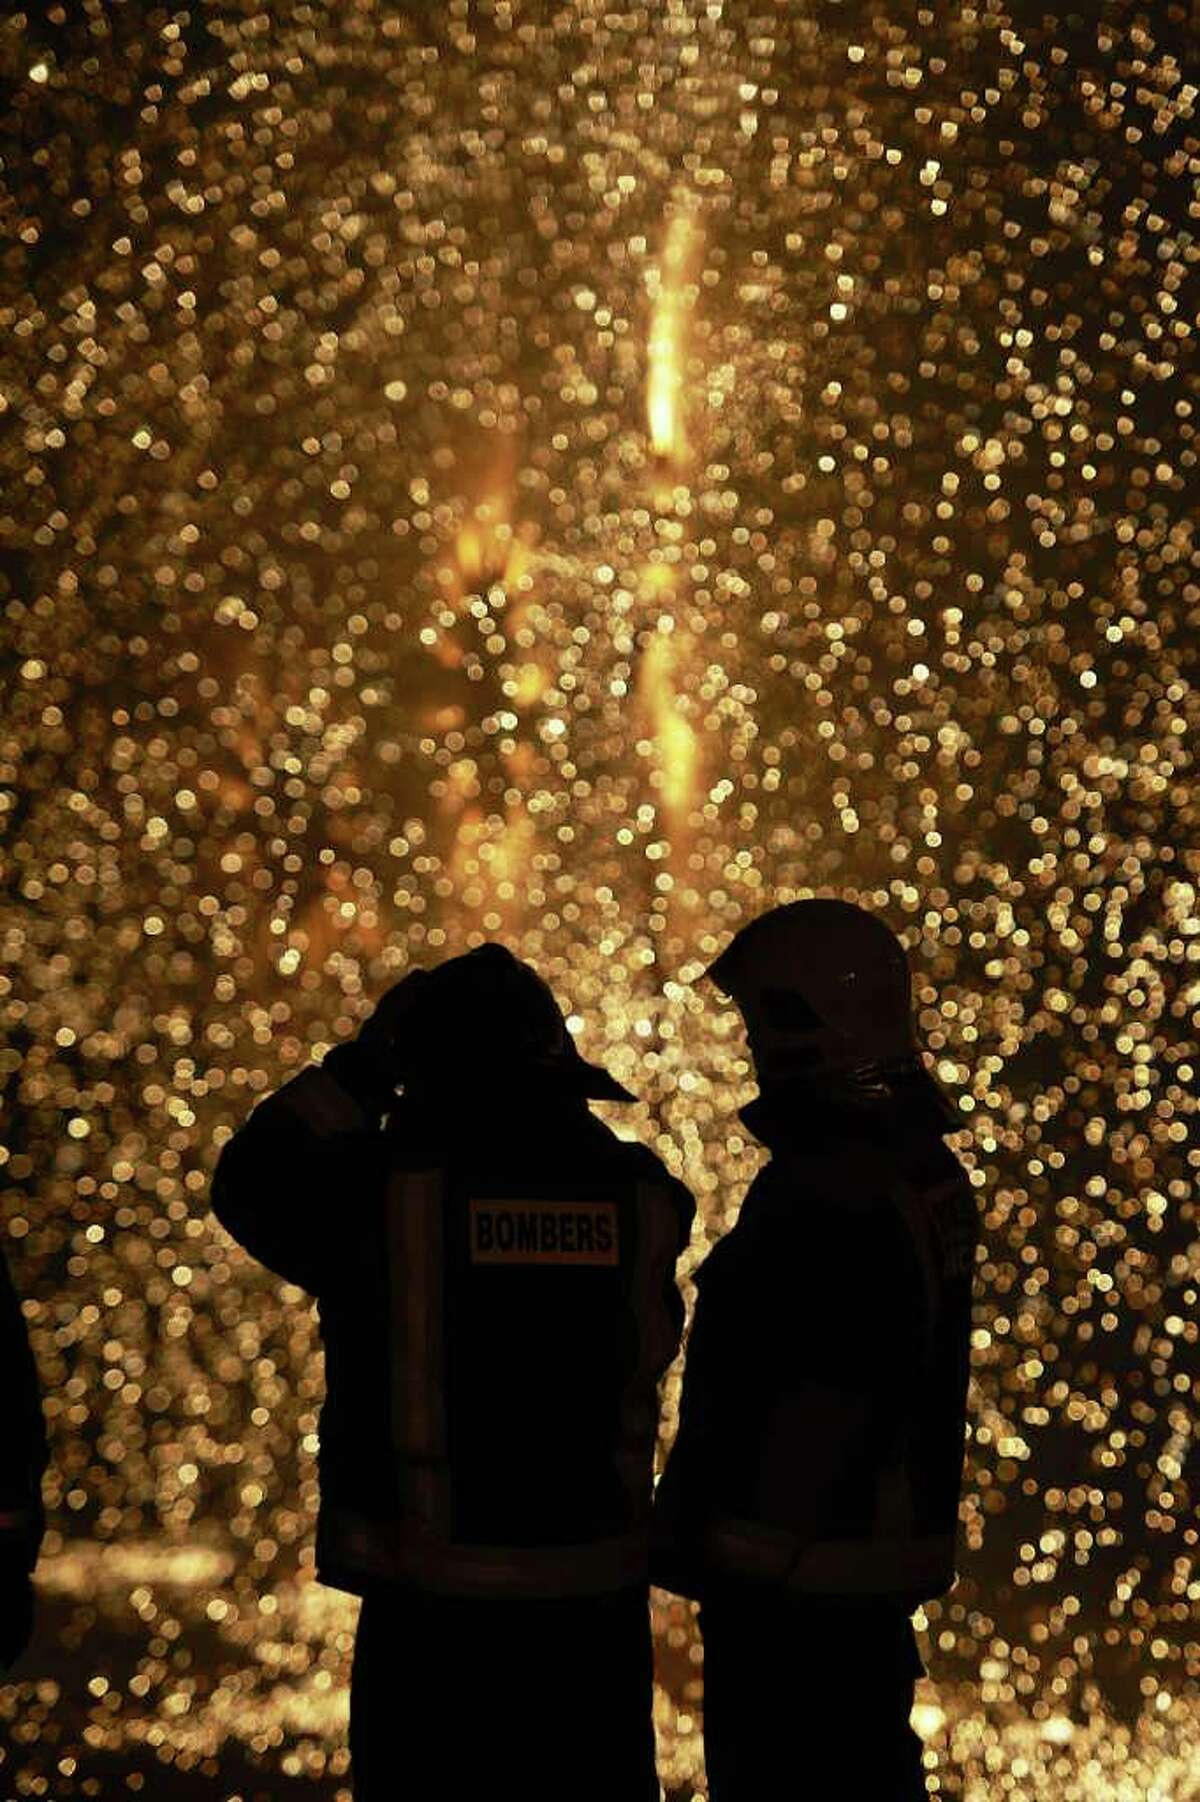 VALENCIA, SPAIN - MARCH 19: Firemen look on while a combustible 'Ninot' caricatures burn during the last day of the 'Fallas' festival on March 19, 2012 in Valencia, Spain. The festival, which runs March 15 - 19, celebrates the arrival of spring with fireworks, fiestas and bonfires.